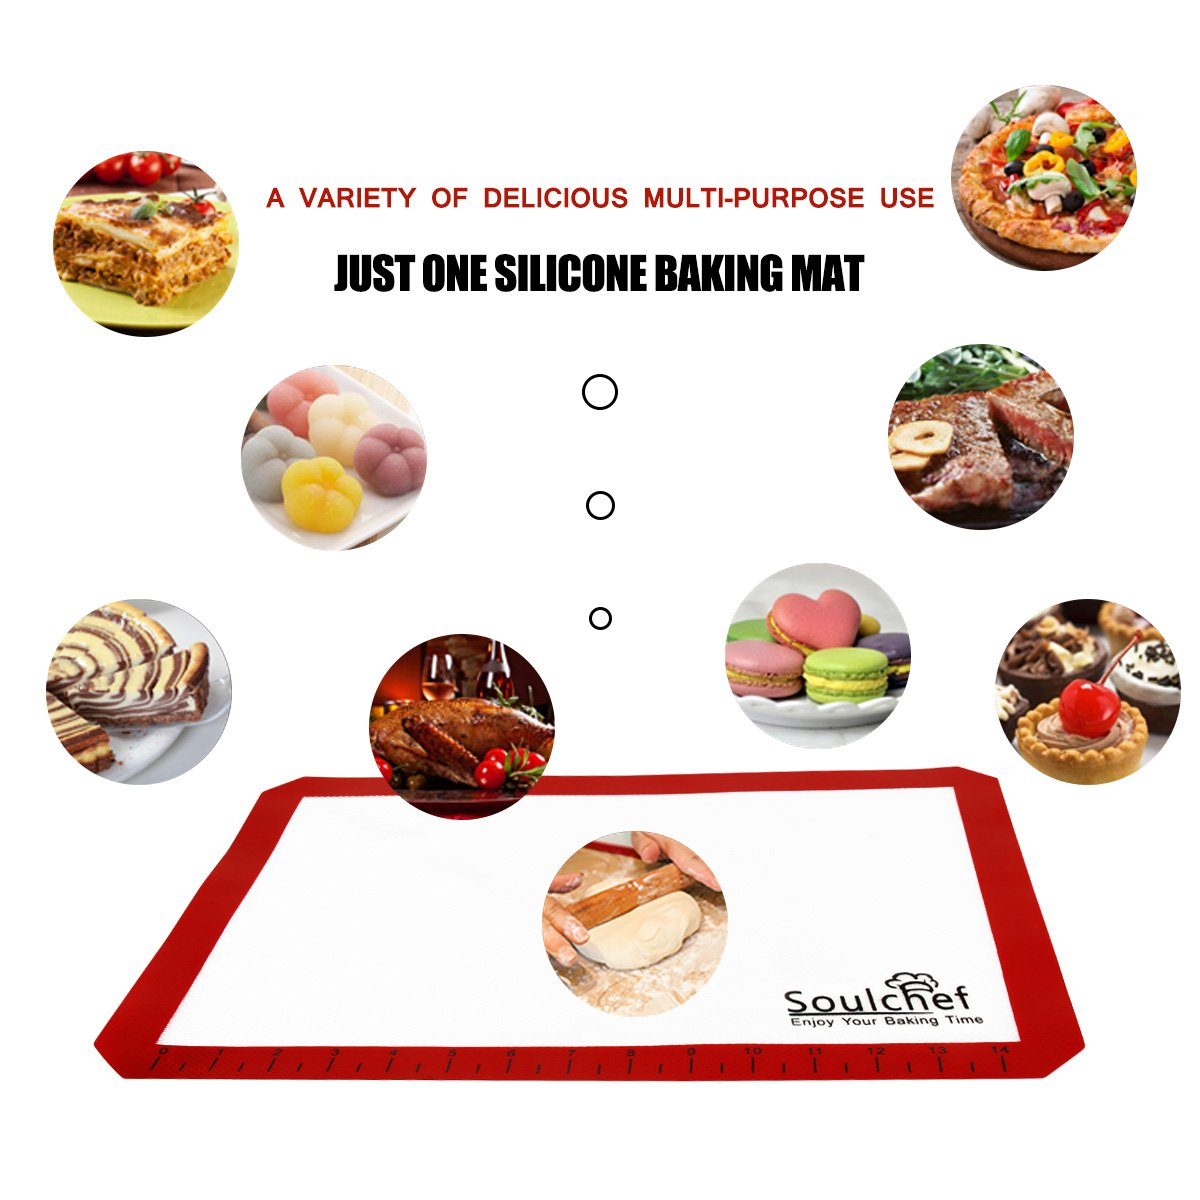 Silicone Baking Mats, Baking Sheets Silicone Mats for Baking 3 Sets Silicon Baking Liners Cookie Sheets Nonstick Reusable Baking Sheet Liner Non Stick Silicone Baking Mat 2 Half + 1 Quarter Baking Mat by SOULCHEF (Image #6)